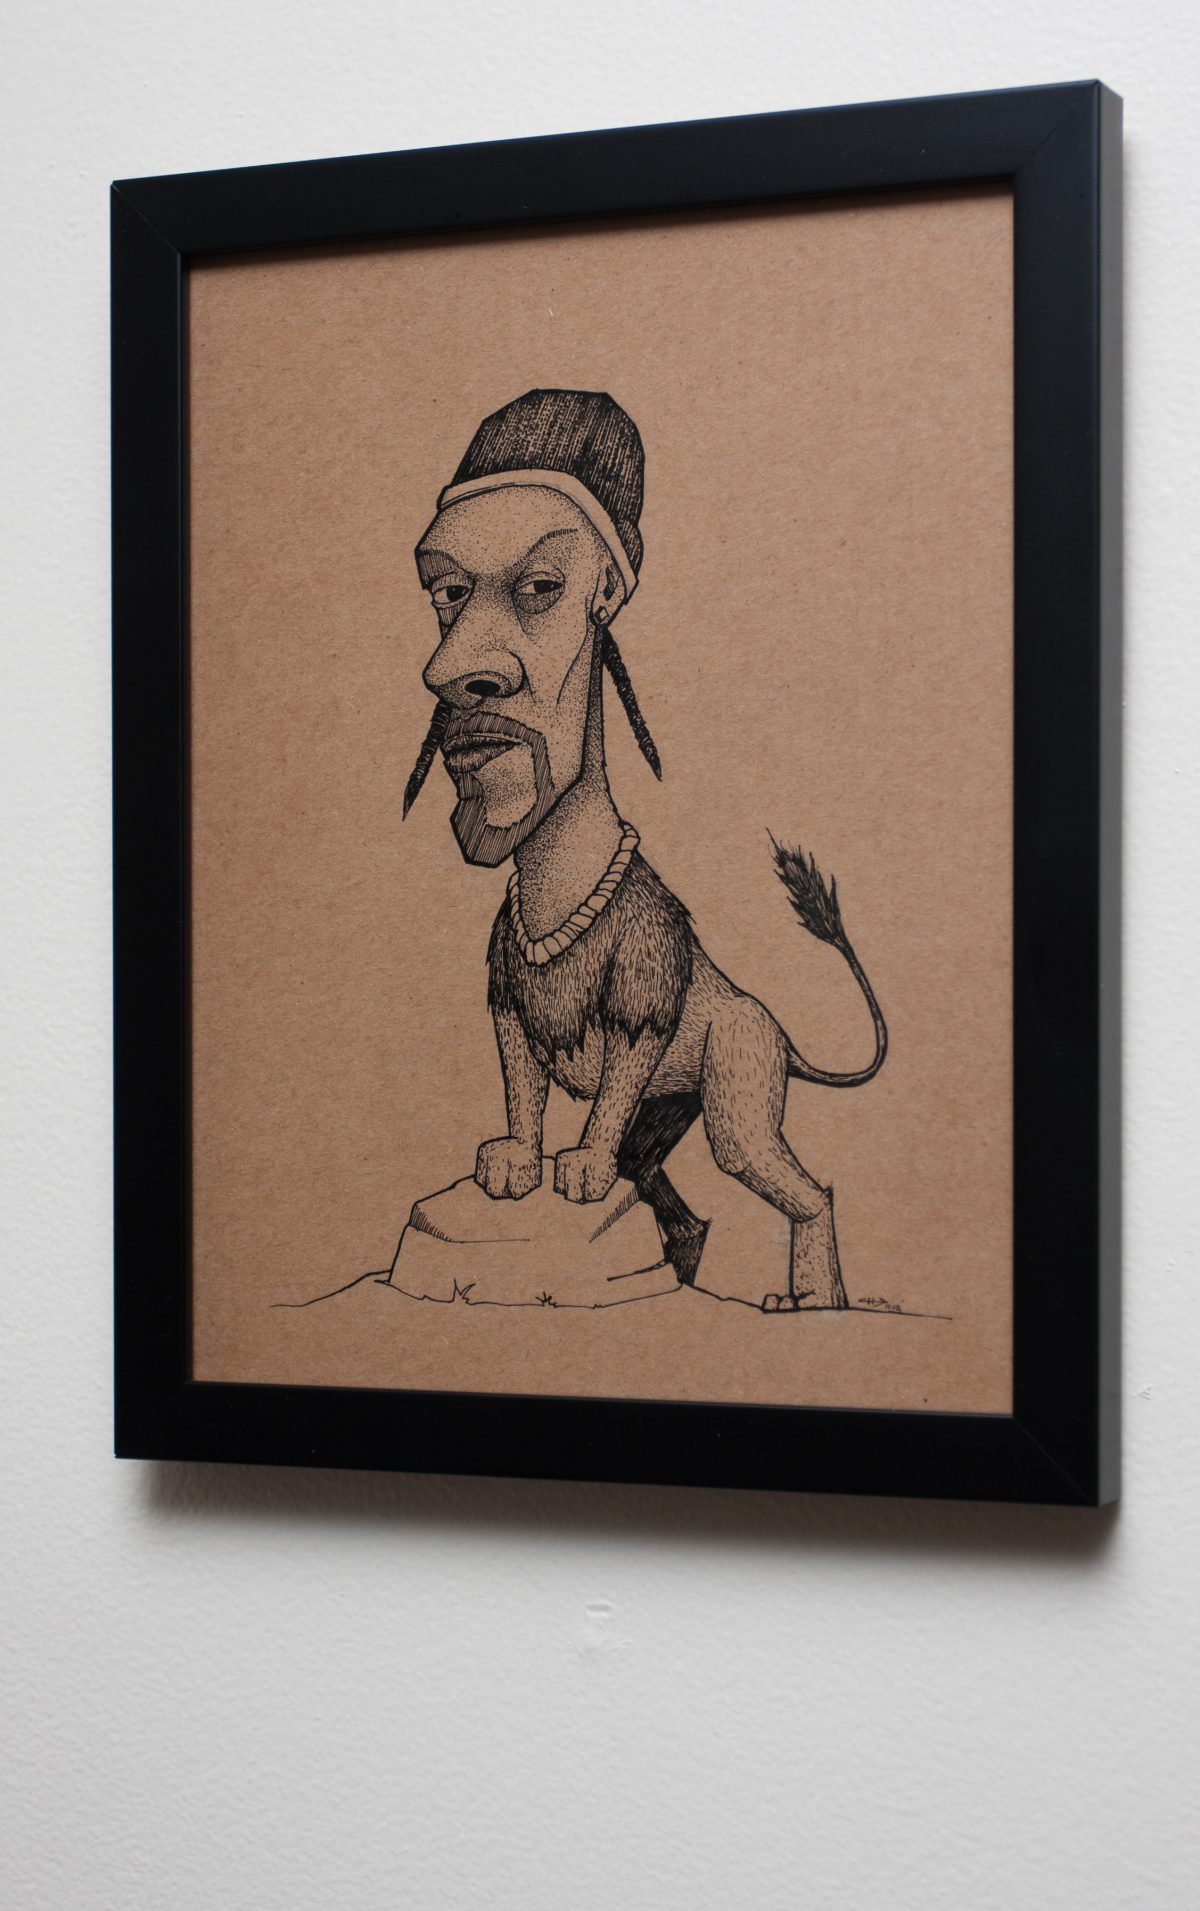 Snoop Lion - 22x28cm, ink and markers on cardboard Contribution to 'Drop it like it's art!', cardboard, ink, ch3